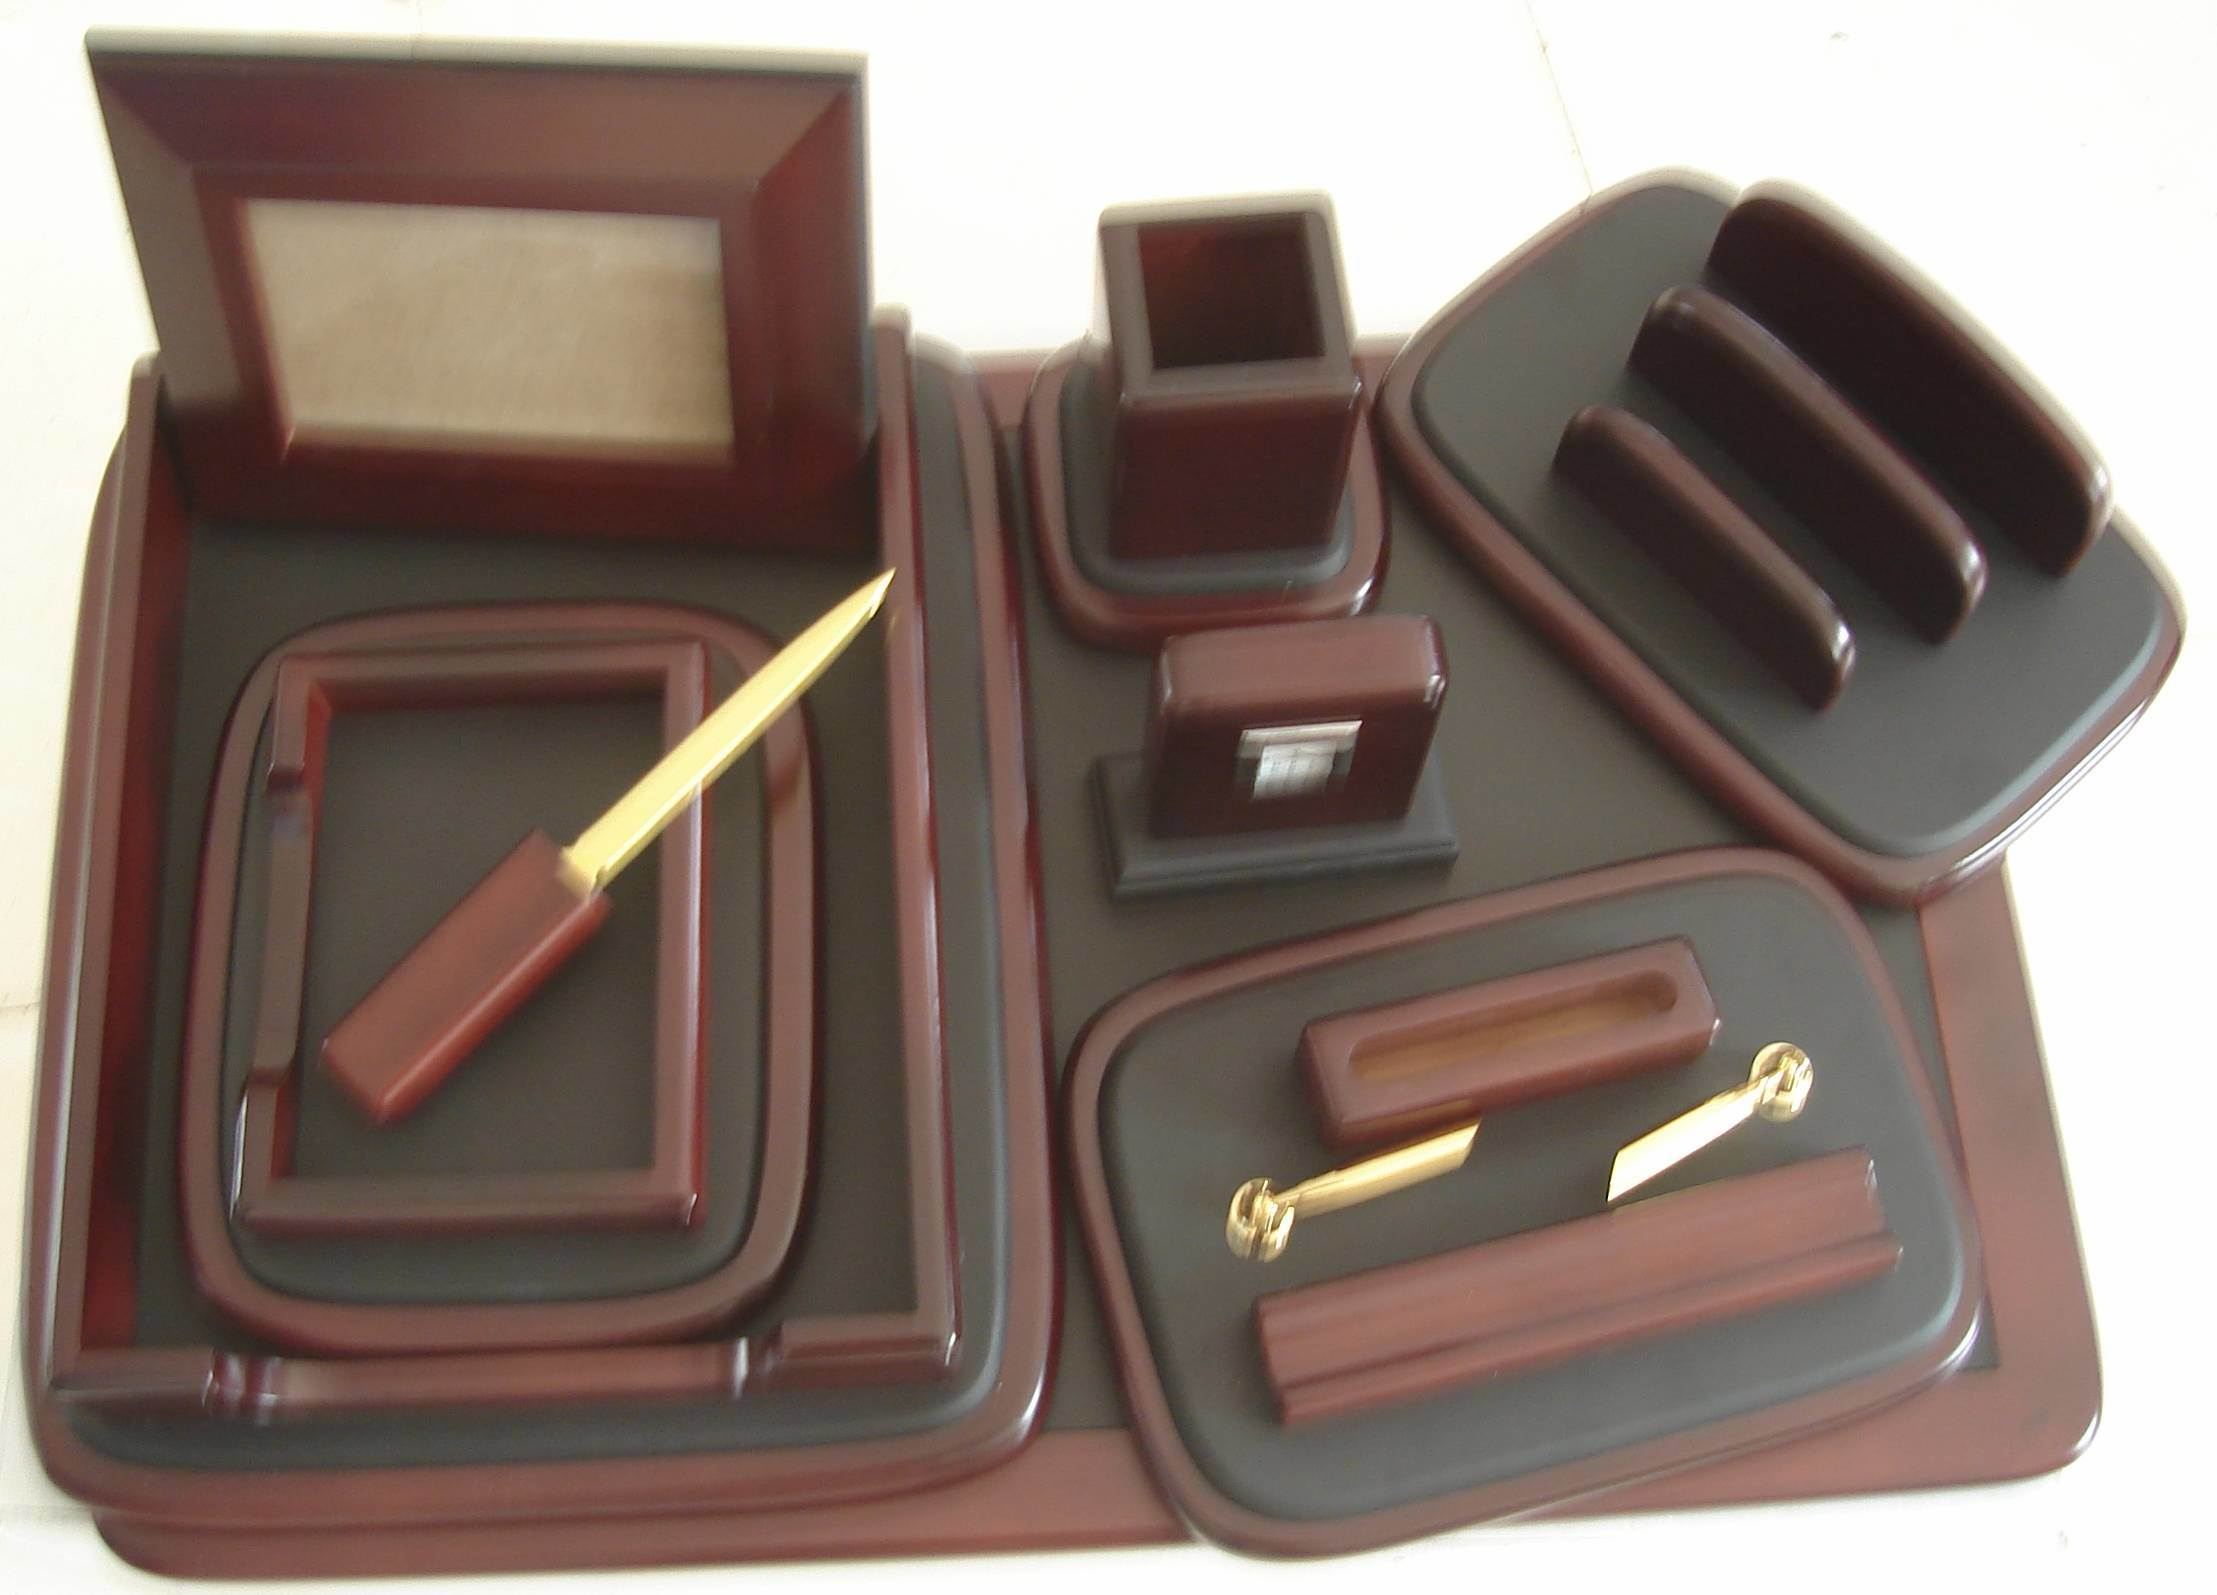 Wood Desk Organizer Set China Wood Desk Organizers Set Kkf107 China Wood Desk